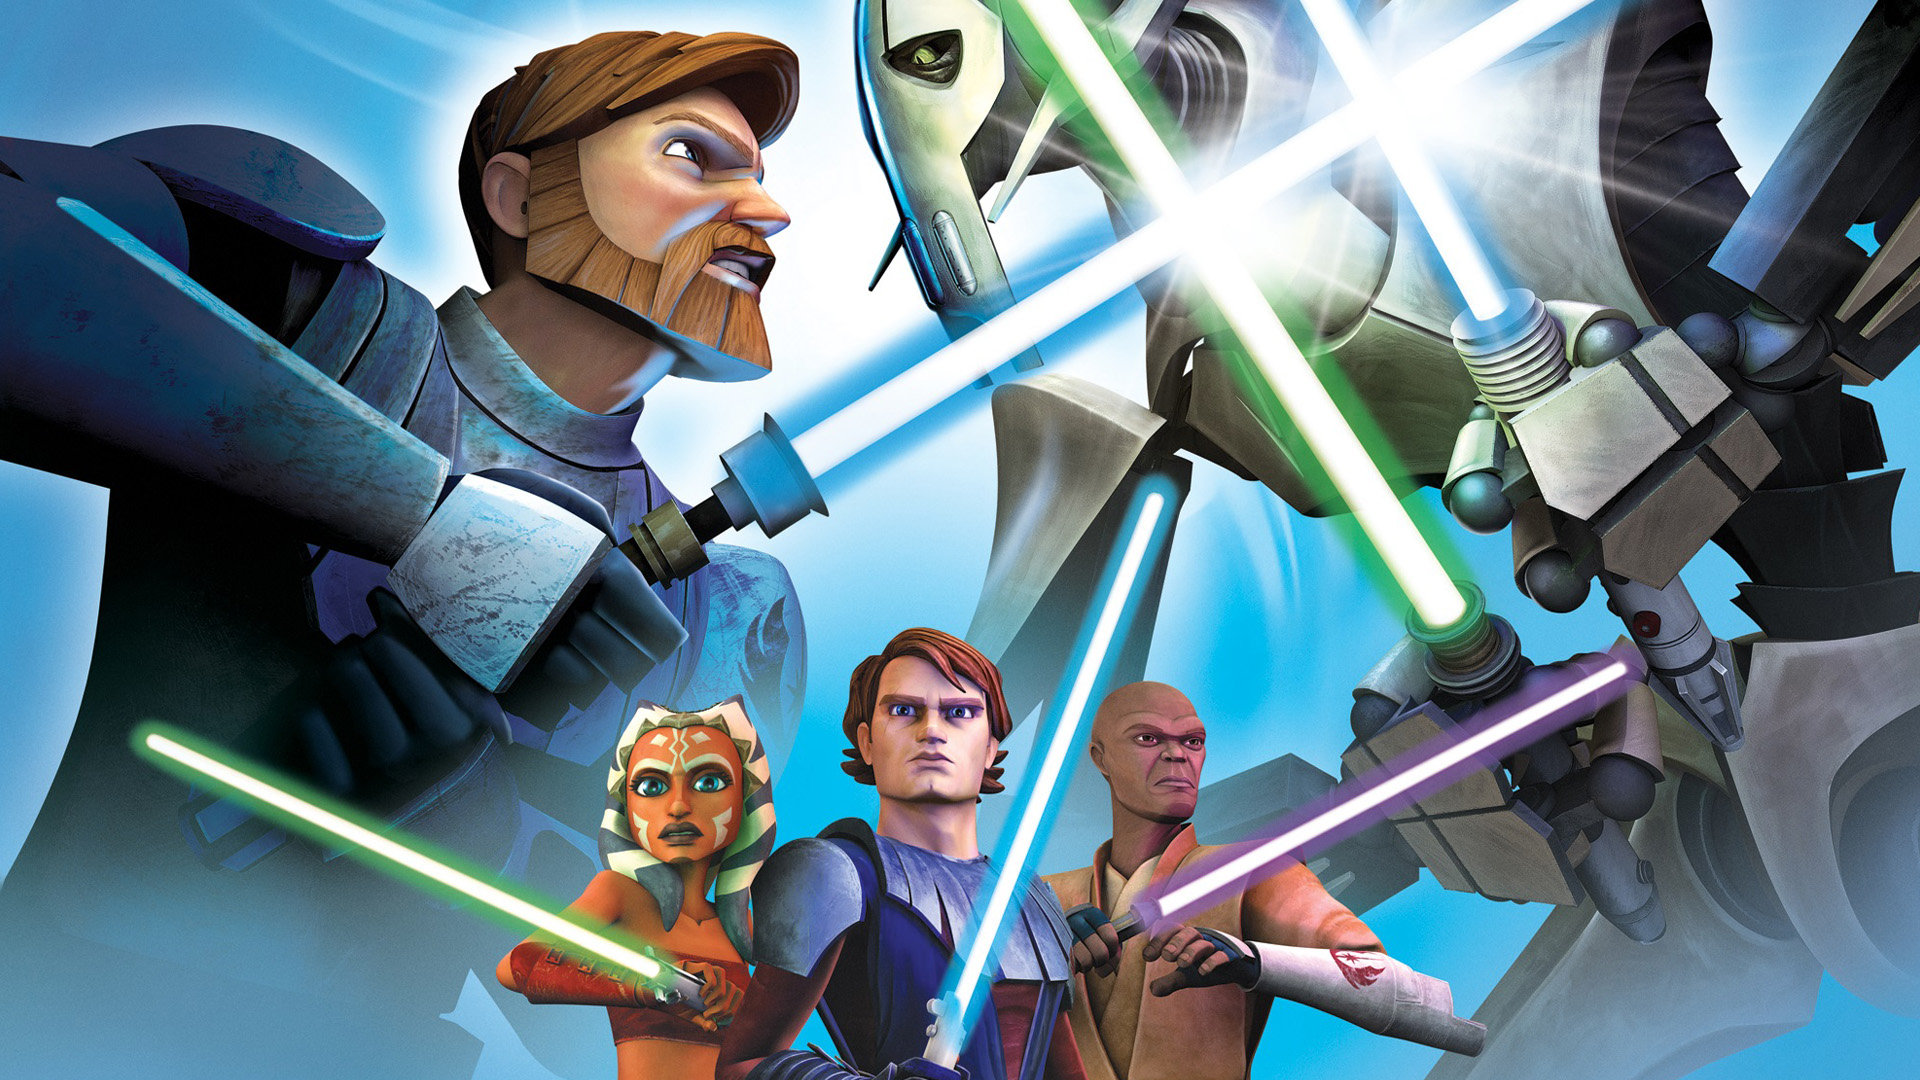 Star Wars The Clone Wars Wallpapers 1920x1080 Full Hd 1080p Desktop Backgrounds